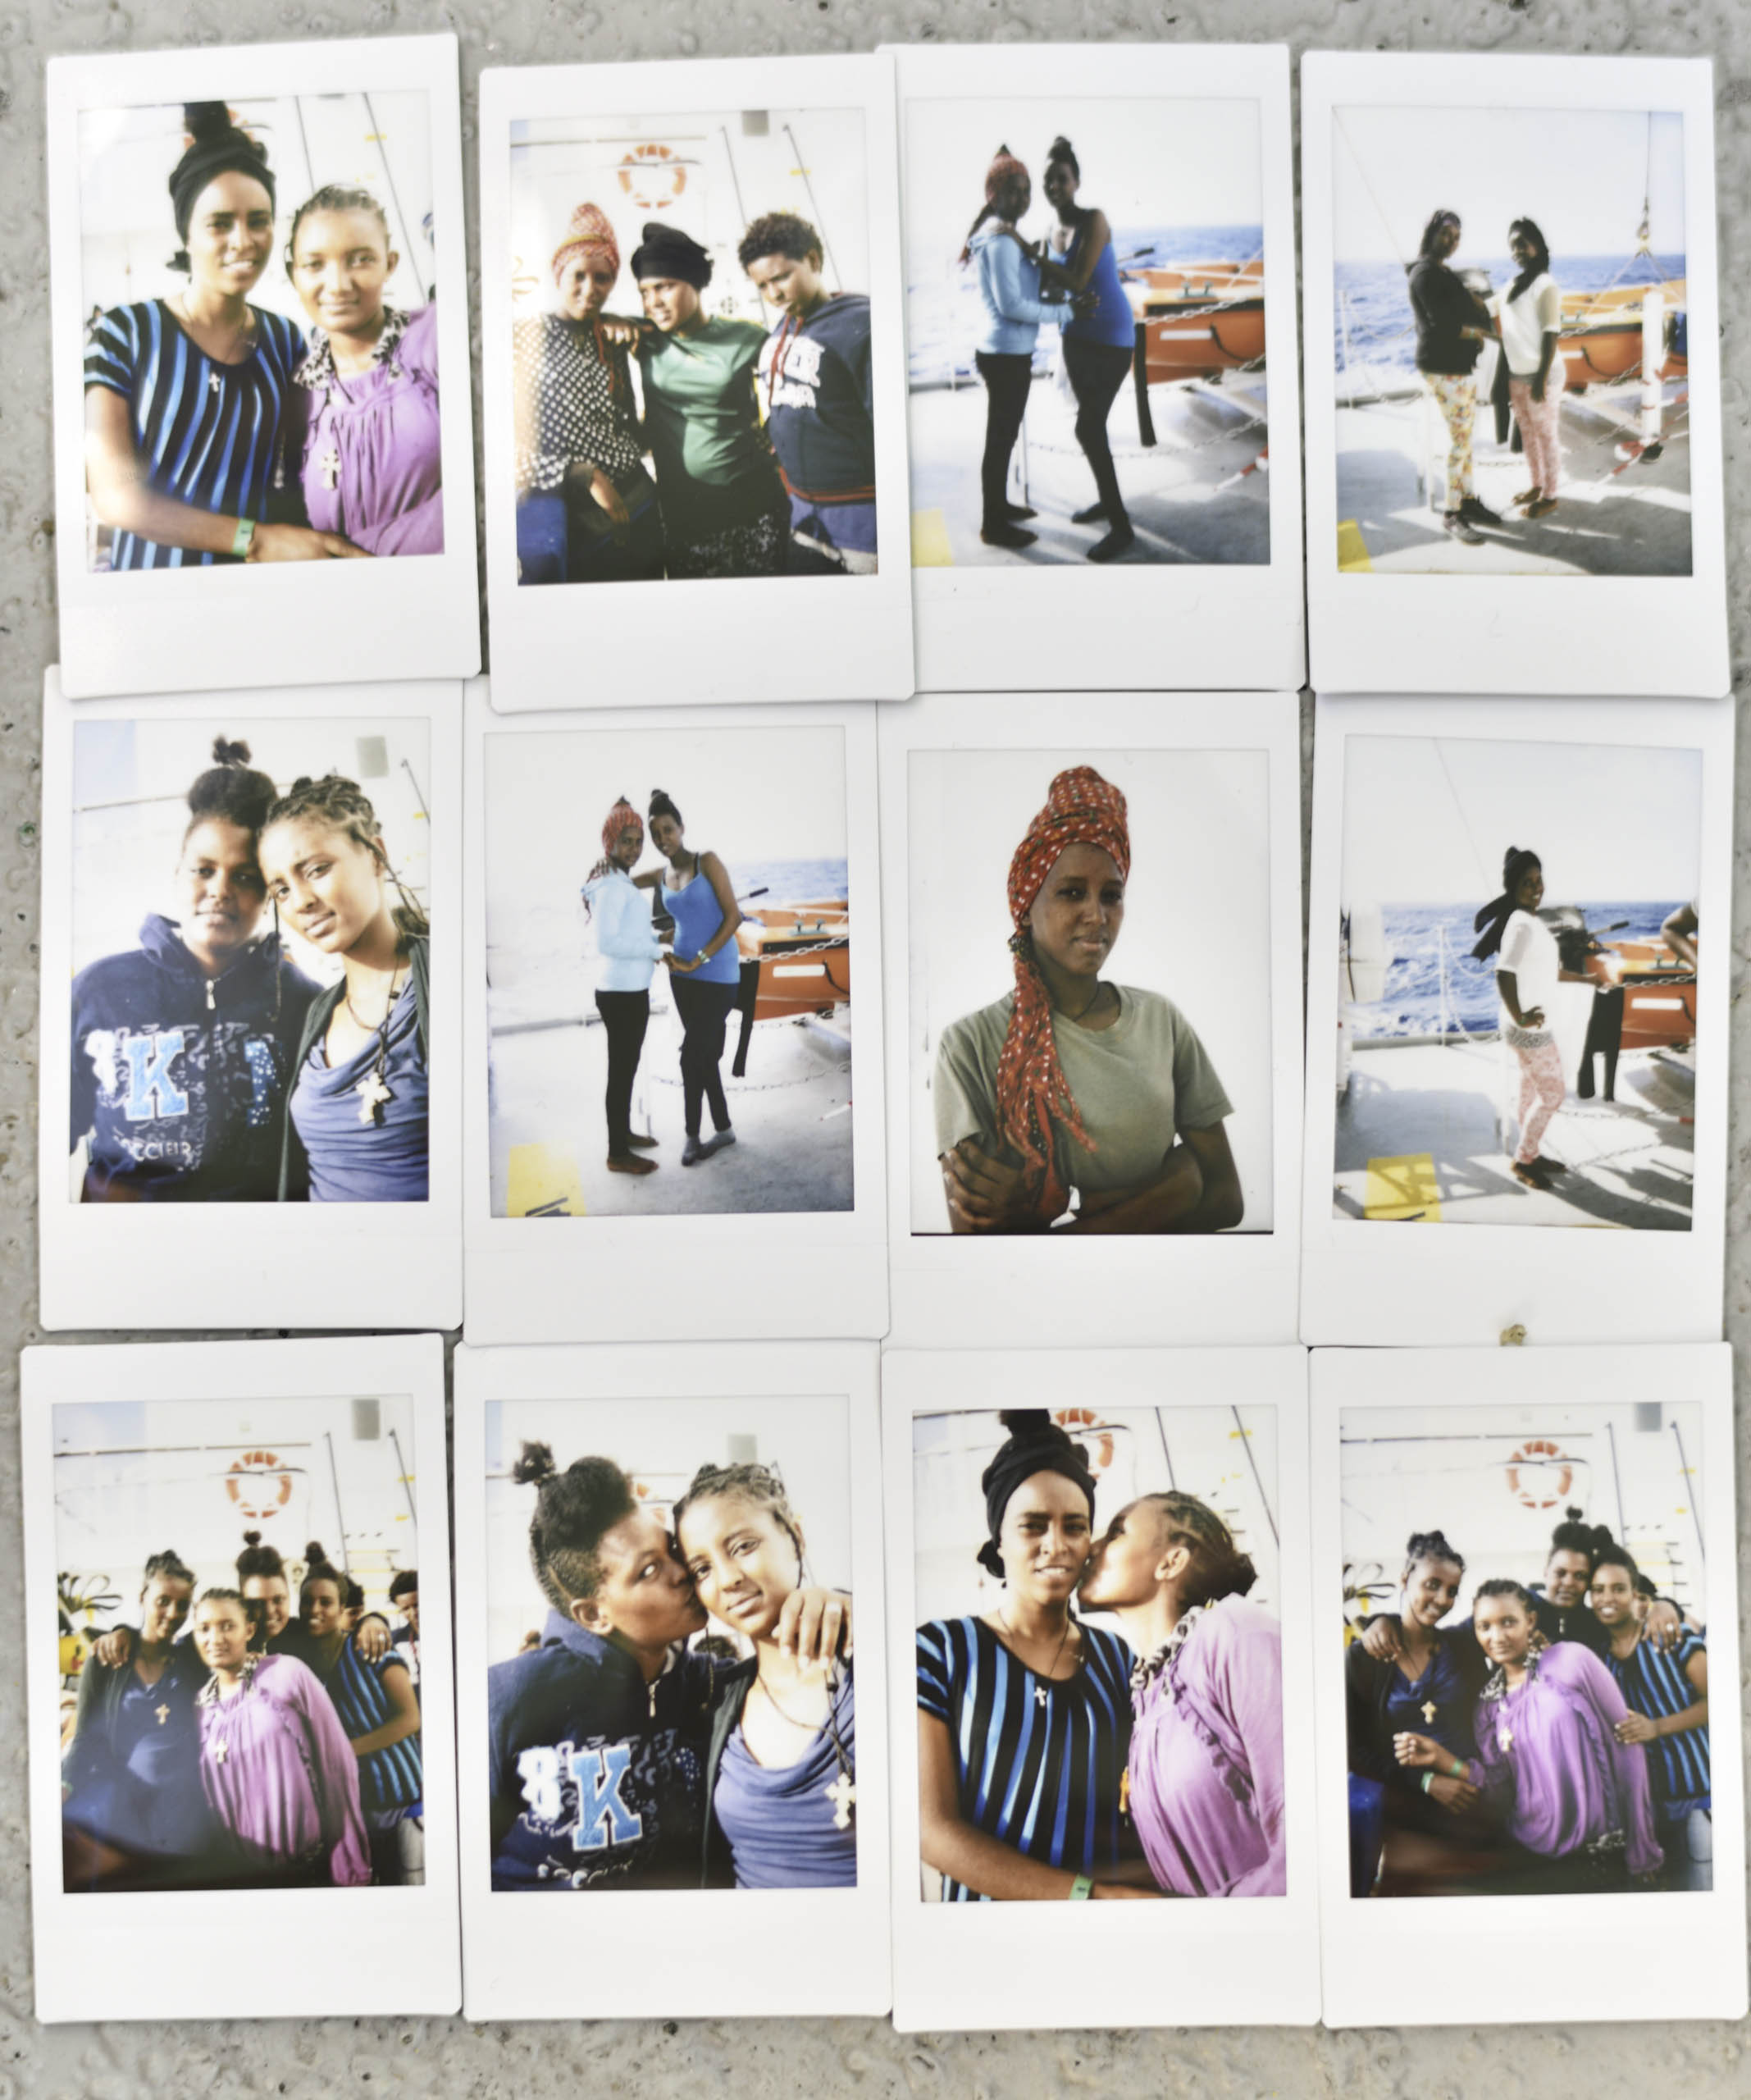 Addario took pictures of the rescued migrants, which she then gave to them.